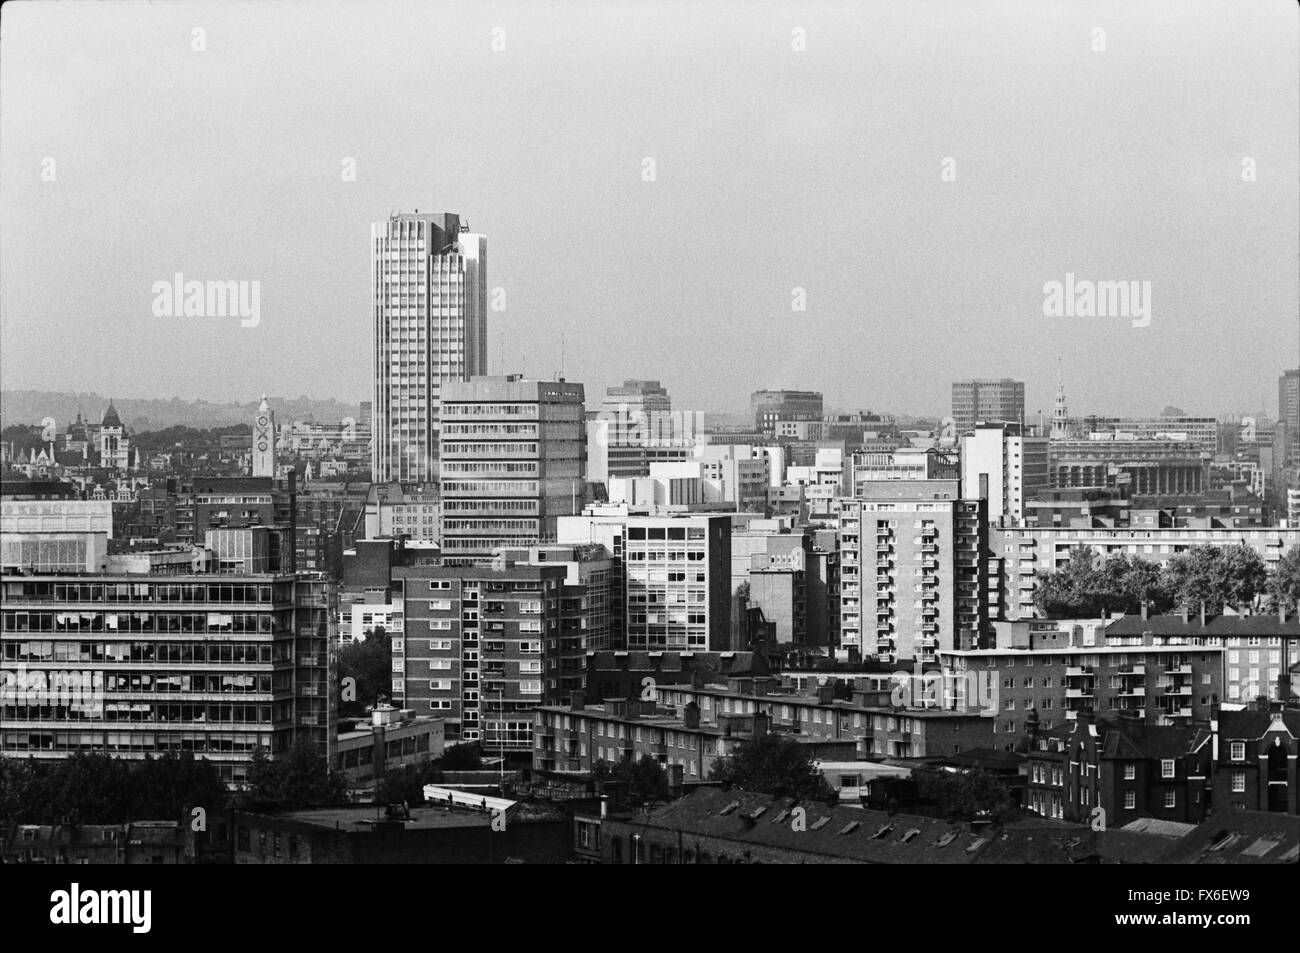 archival-image-of-london-city-skyline-from-elephant-and-castle-1979-FX6EW9.jpg